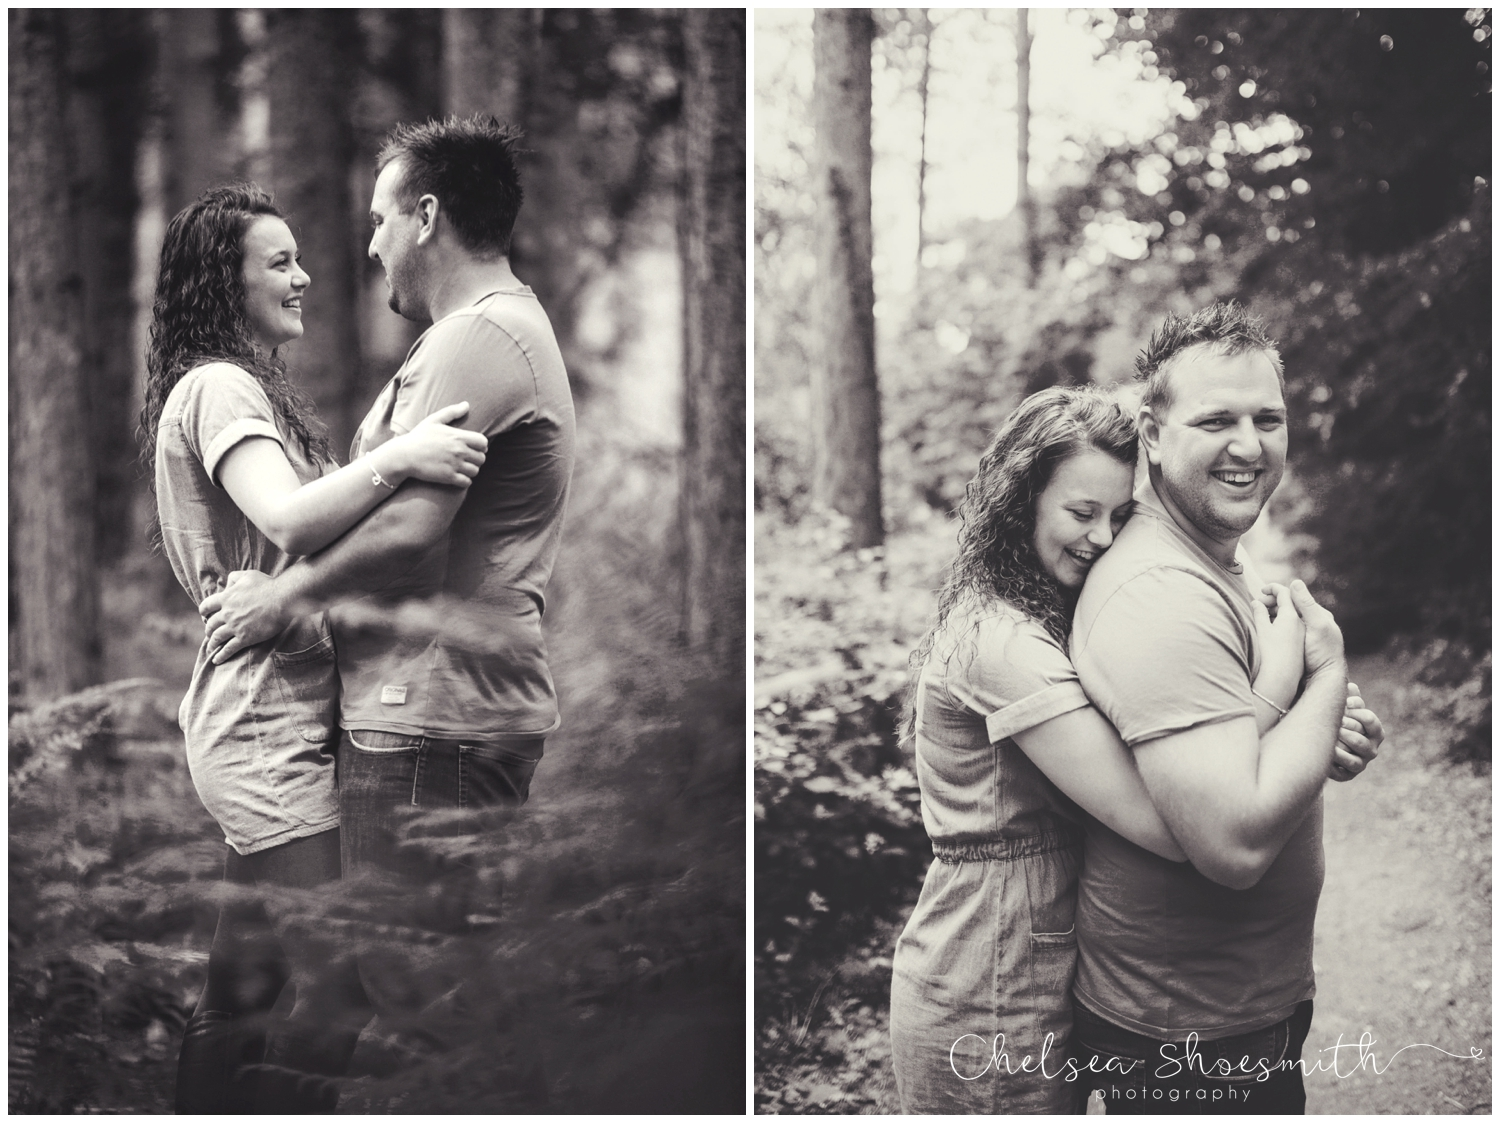 (68 of 75) Bethan & Peter Engagement Shoot Cheshire, Delamere Forest Chelsea Shoesmith Photography